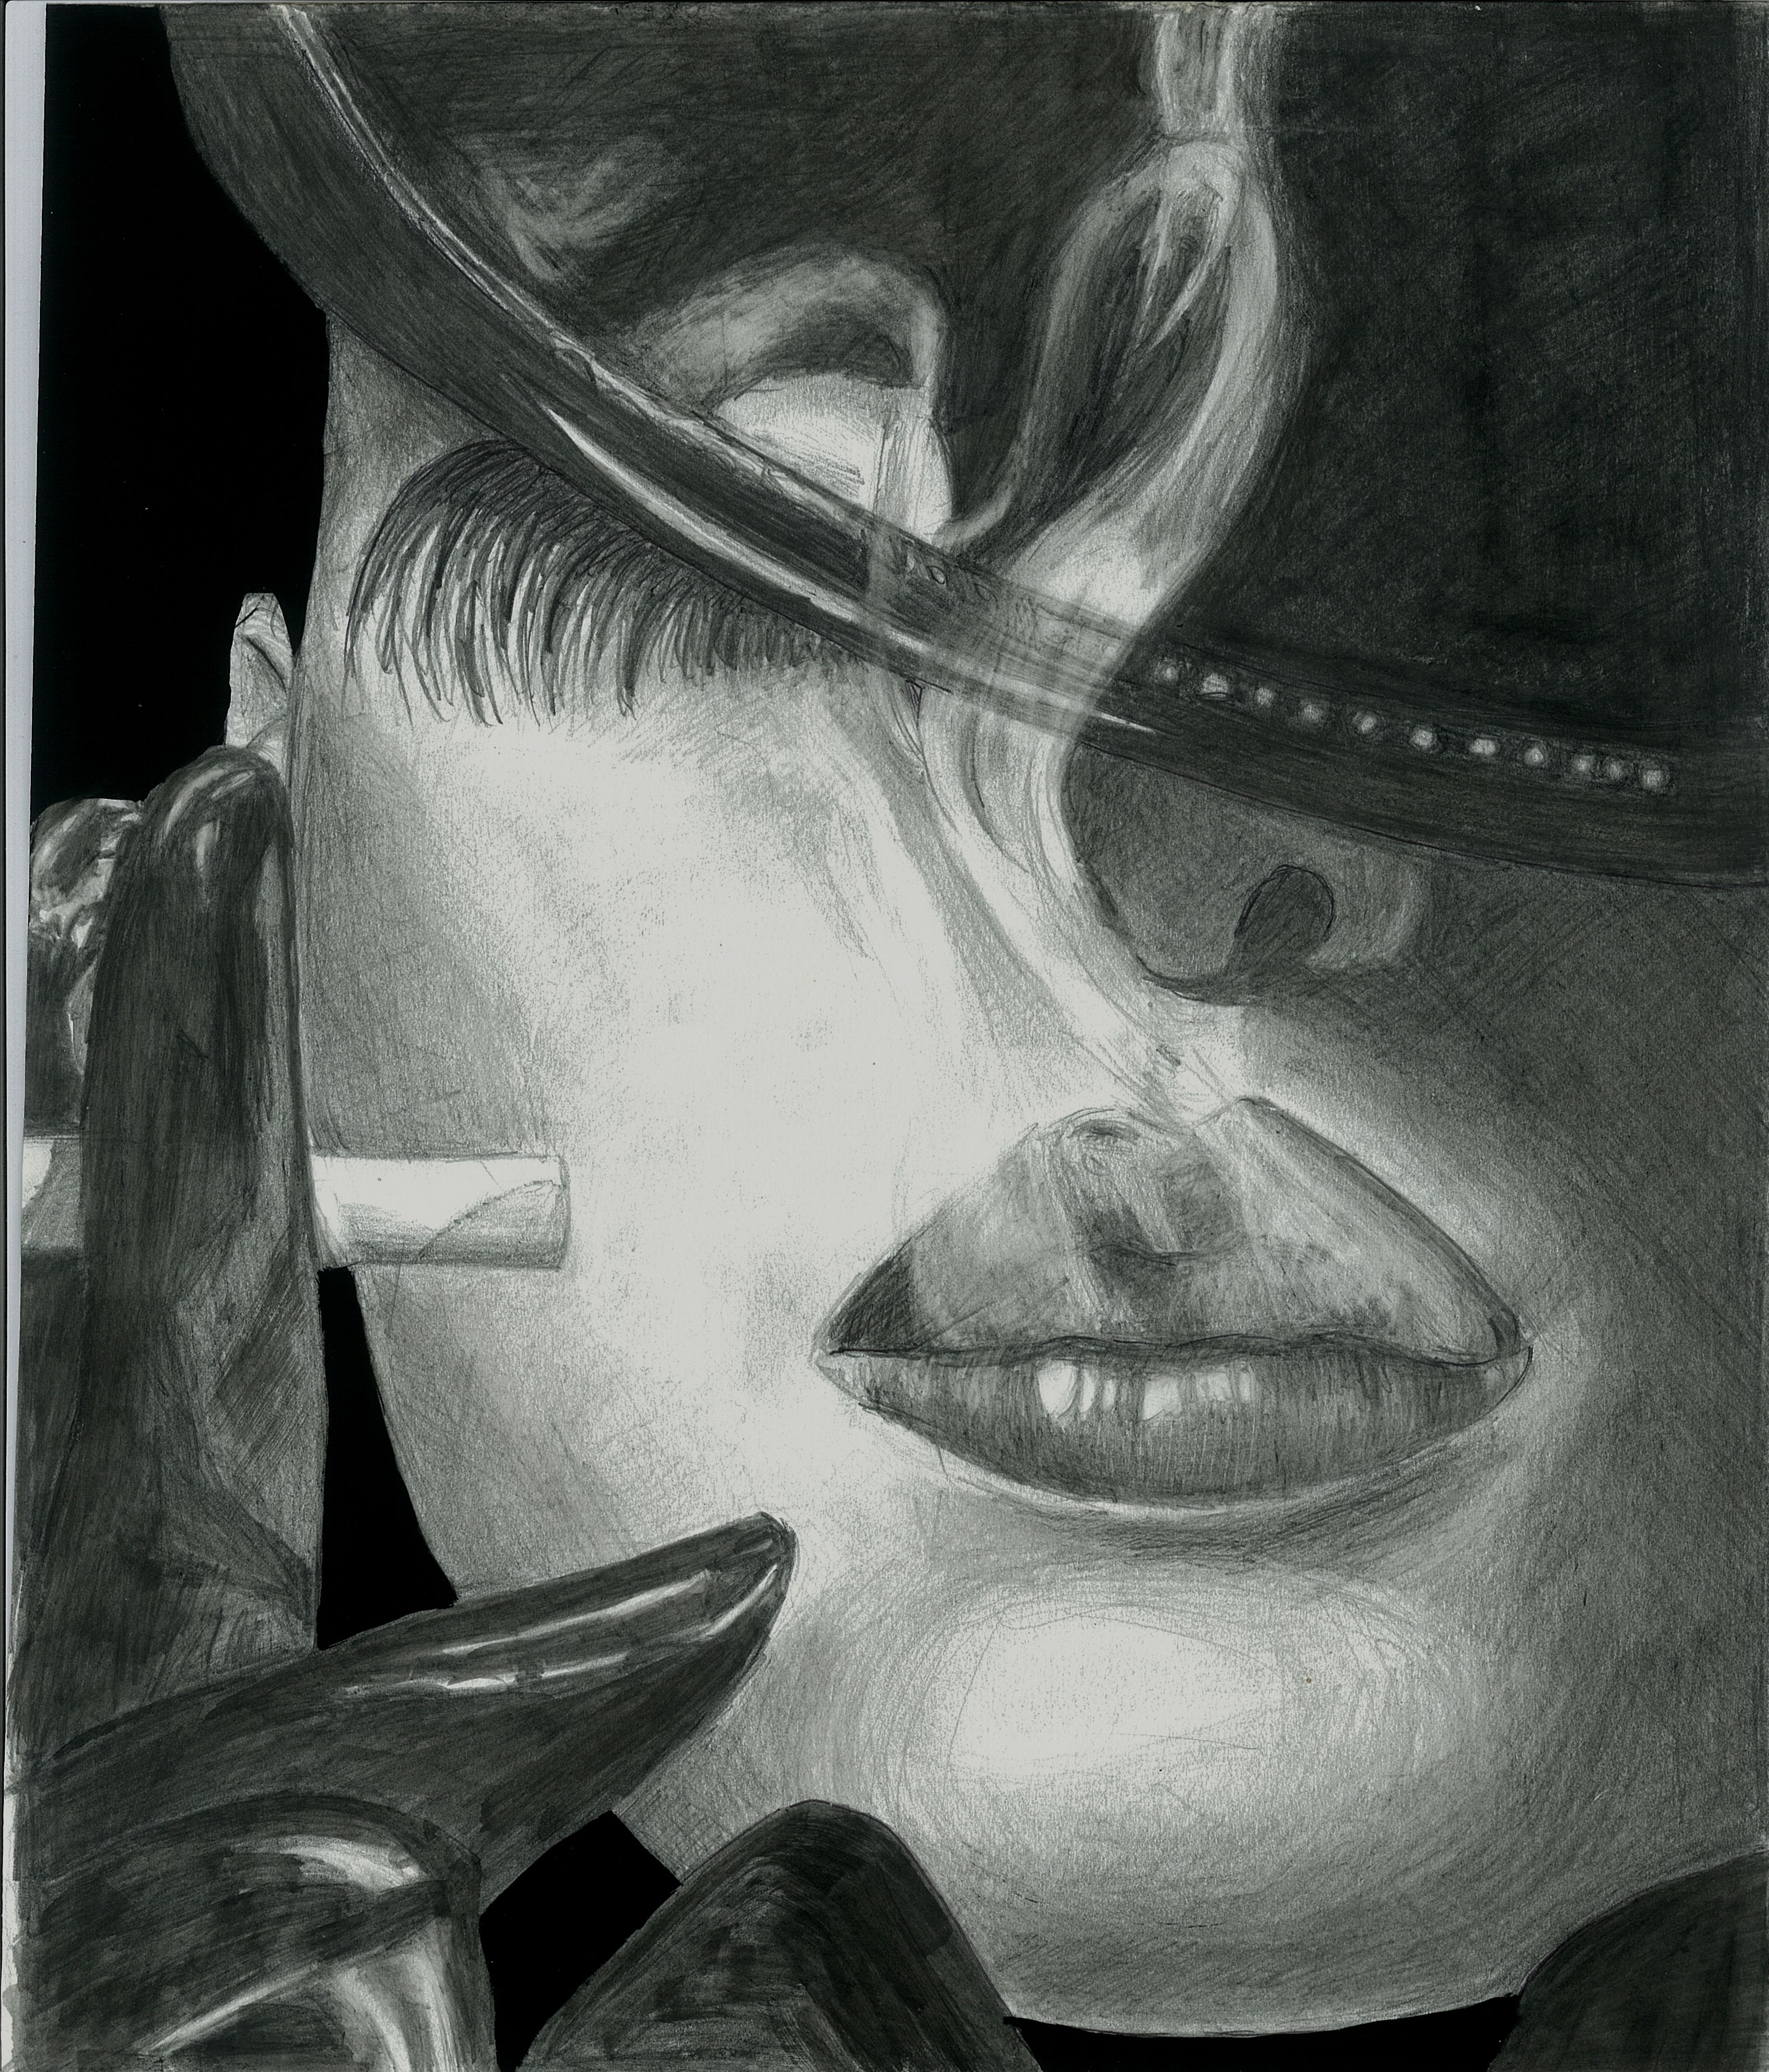 Pencil drawing black and white cigarette smoke art sexy classy woman smoking fedora hat covering the face artwork by dasha